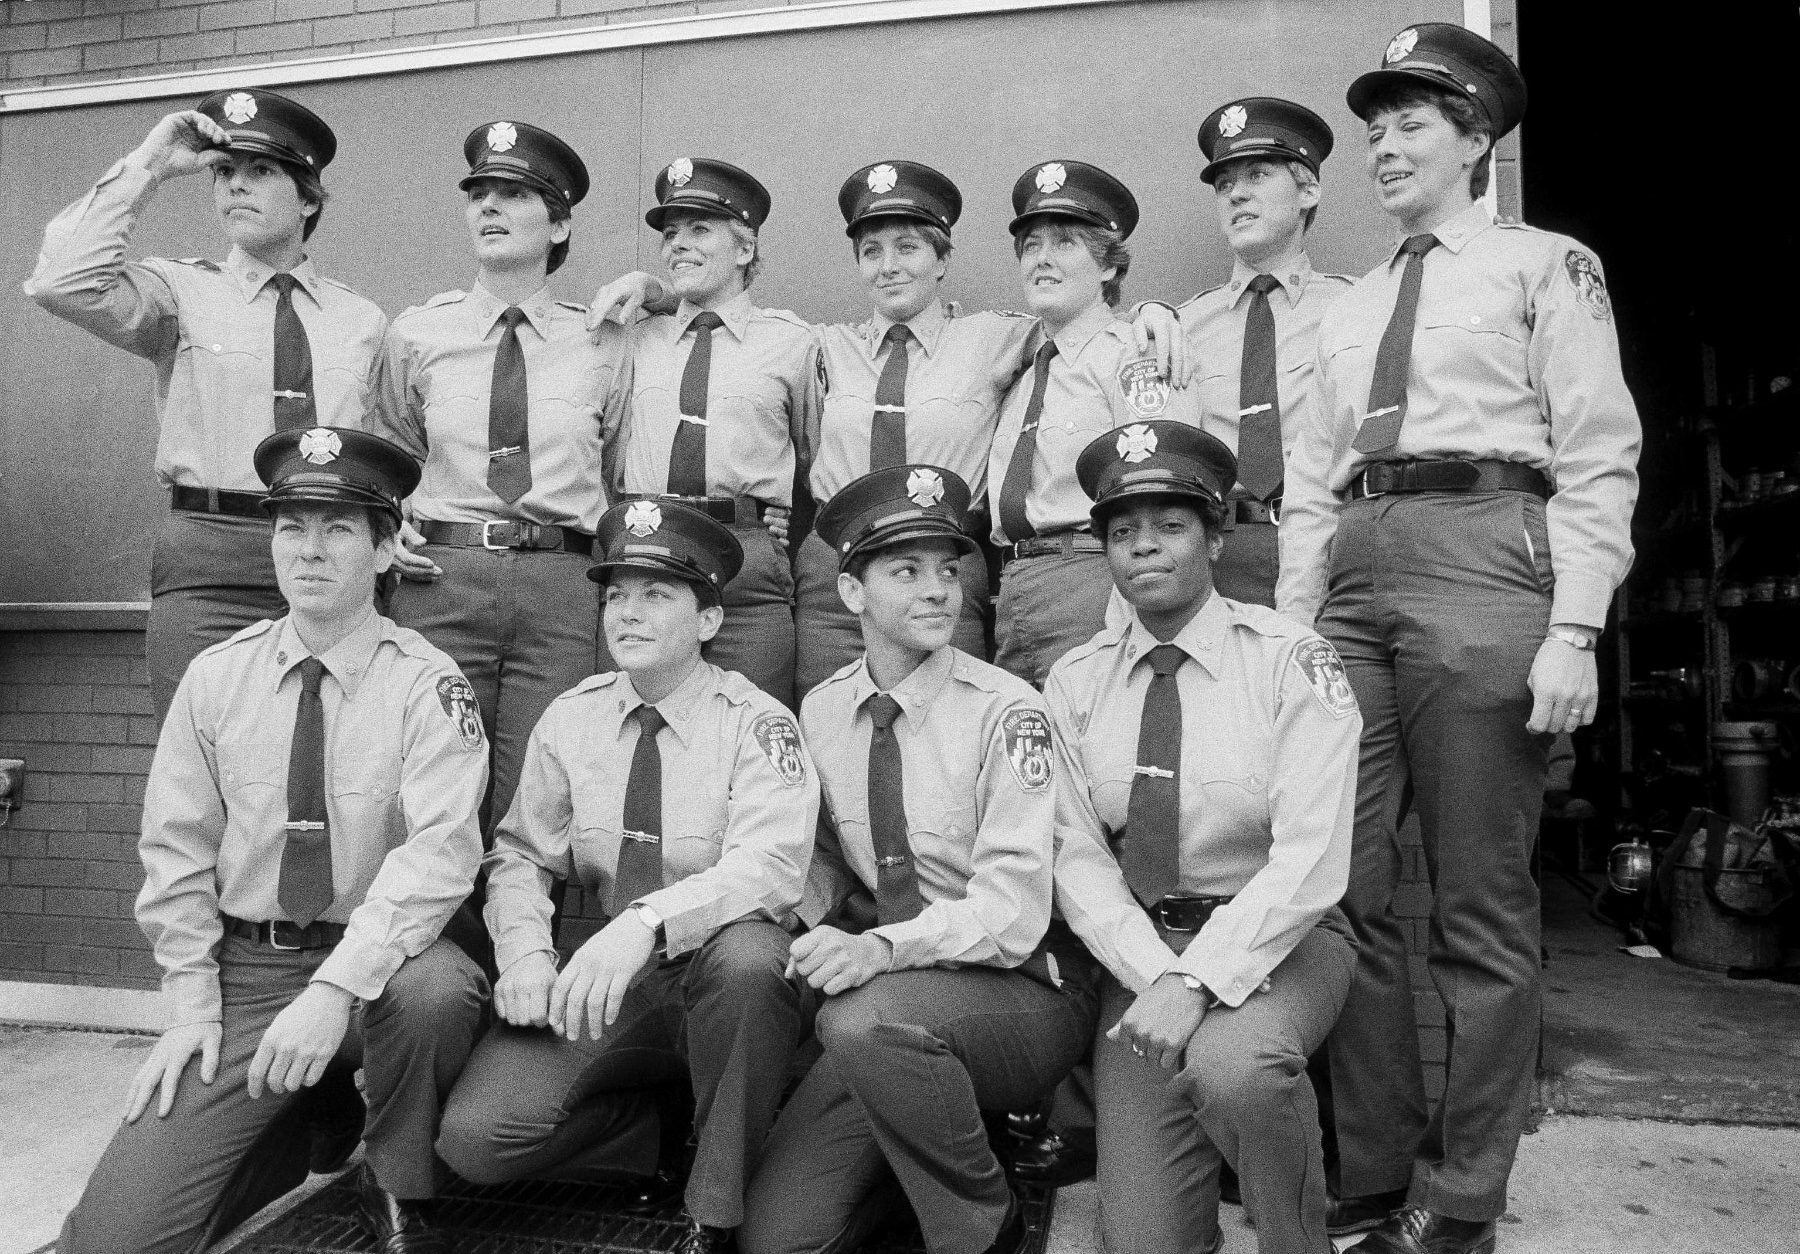 A group of woman firefighters pose in a black and white photo.